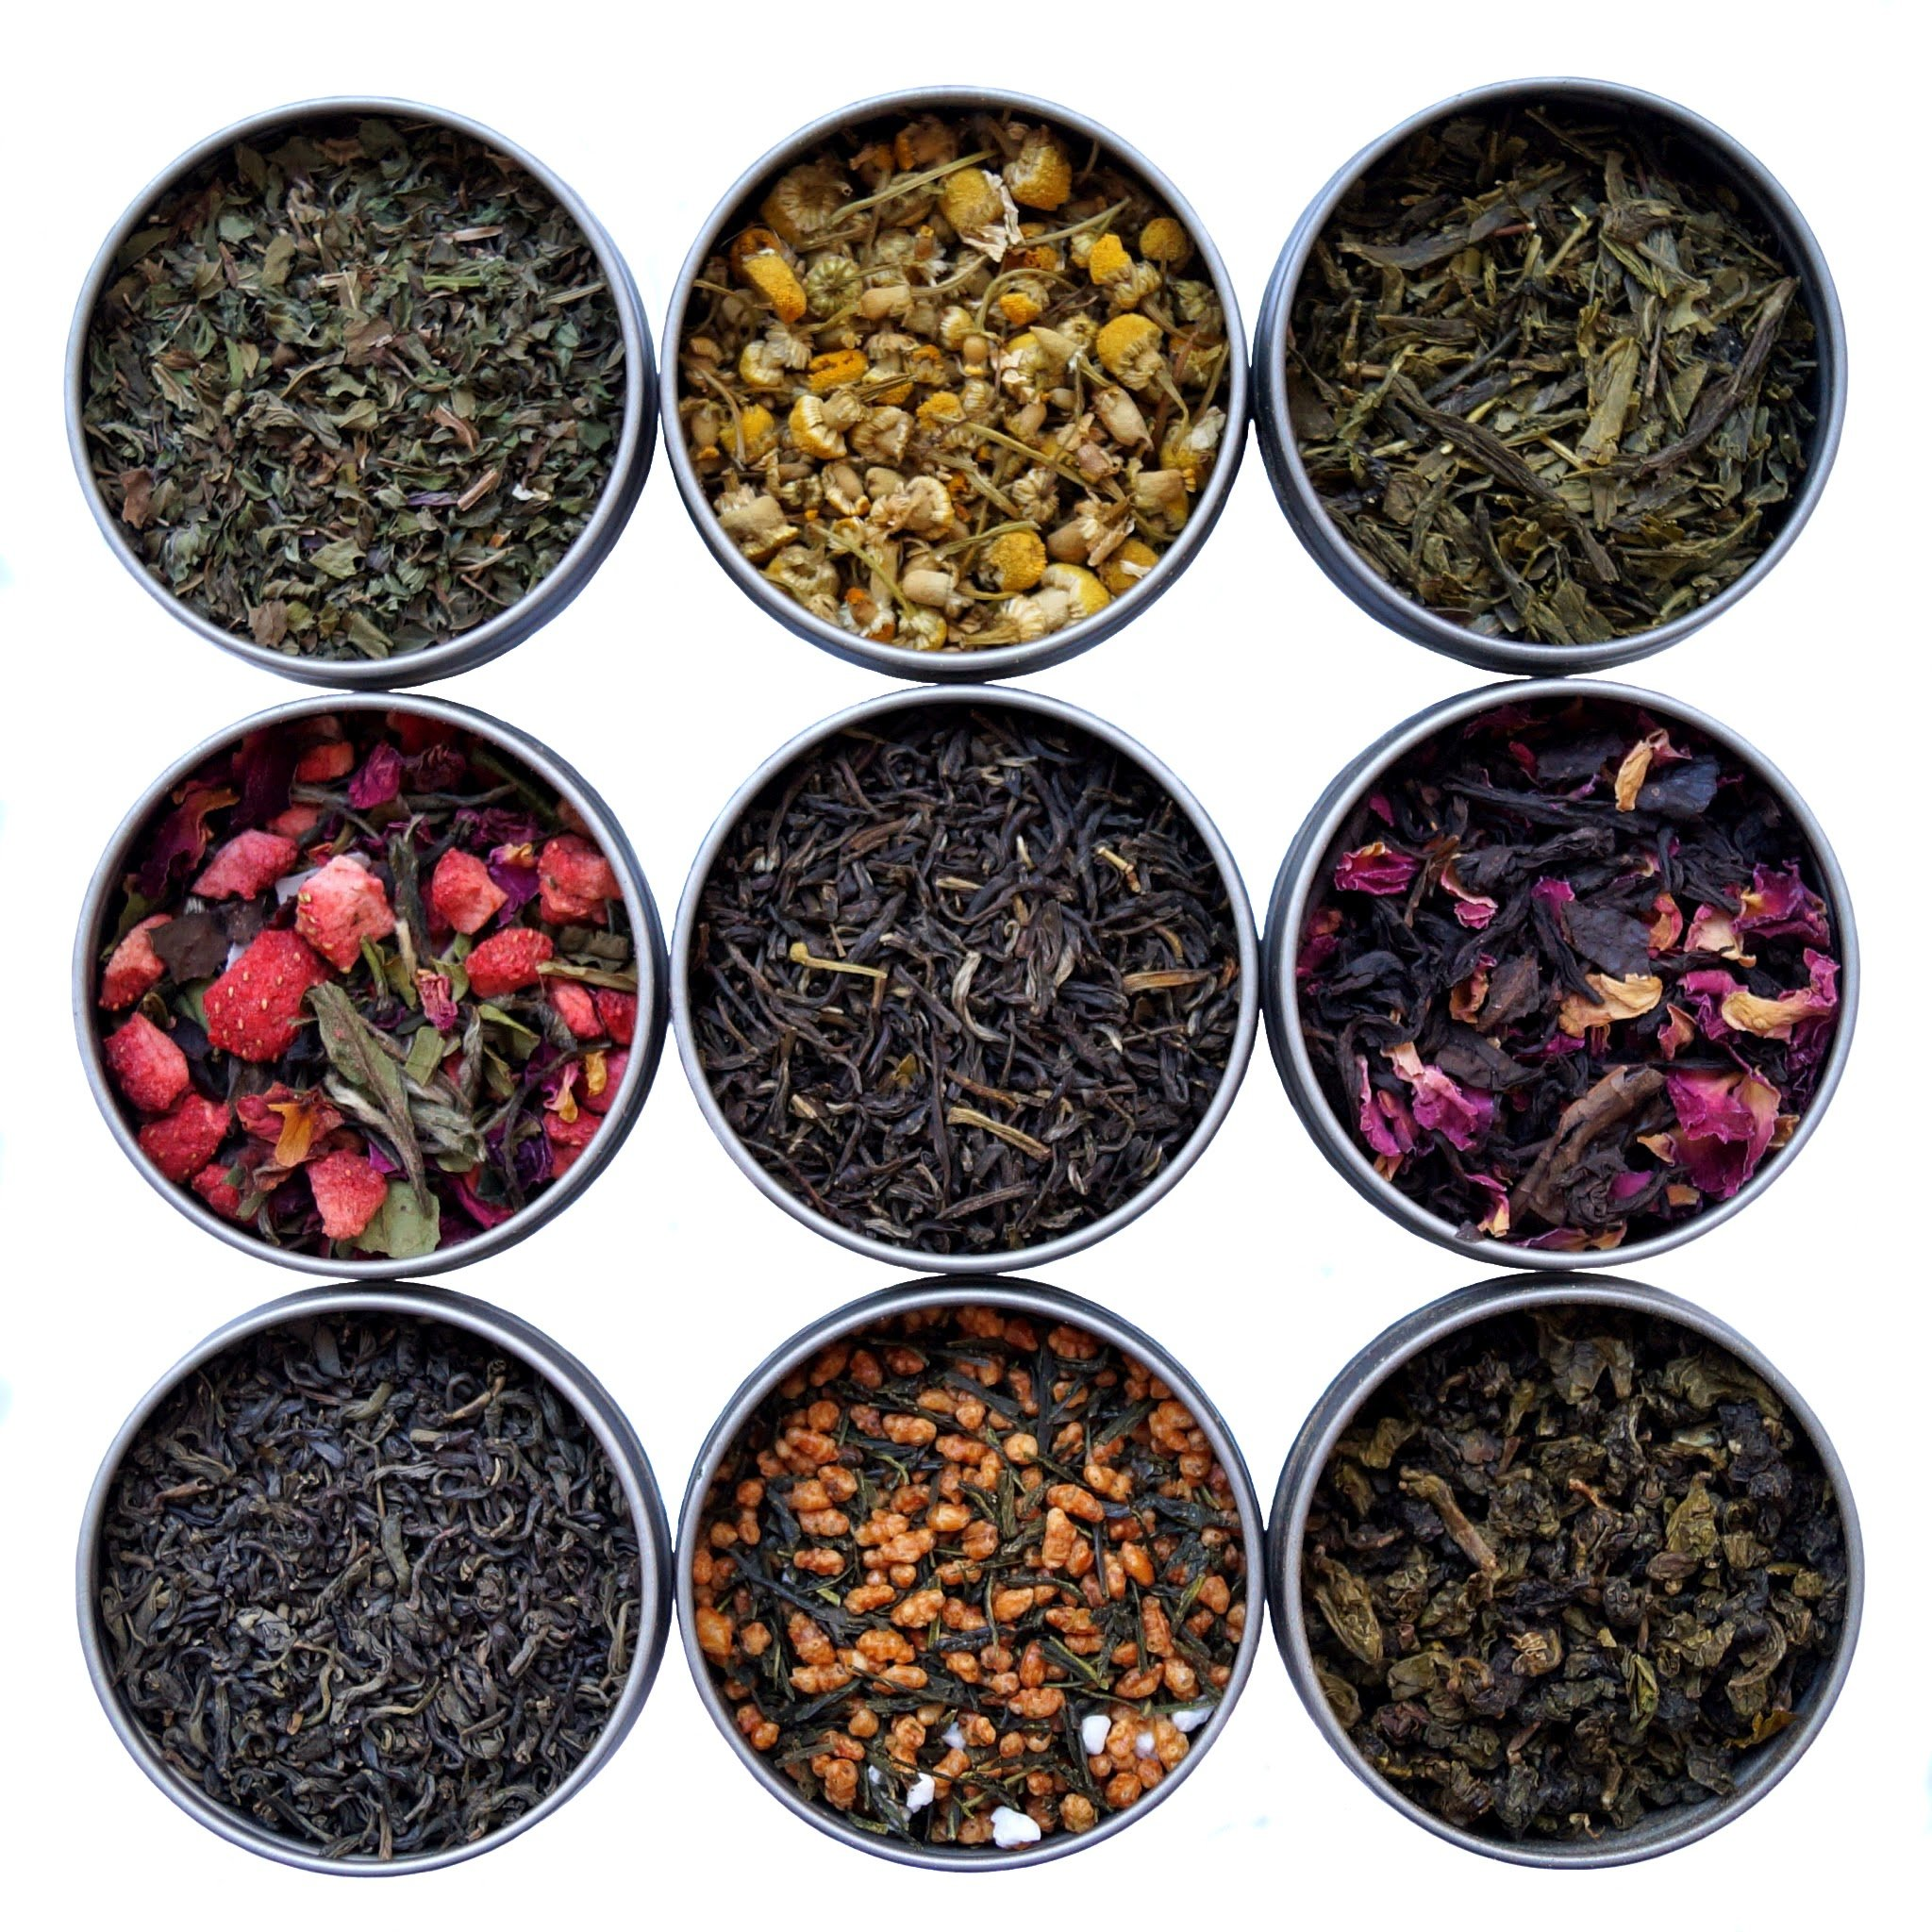 Heavenly Tea Leaves Tea Sampler (9 Flavor Variety Pack) by Heavenly Tea Leaves